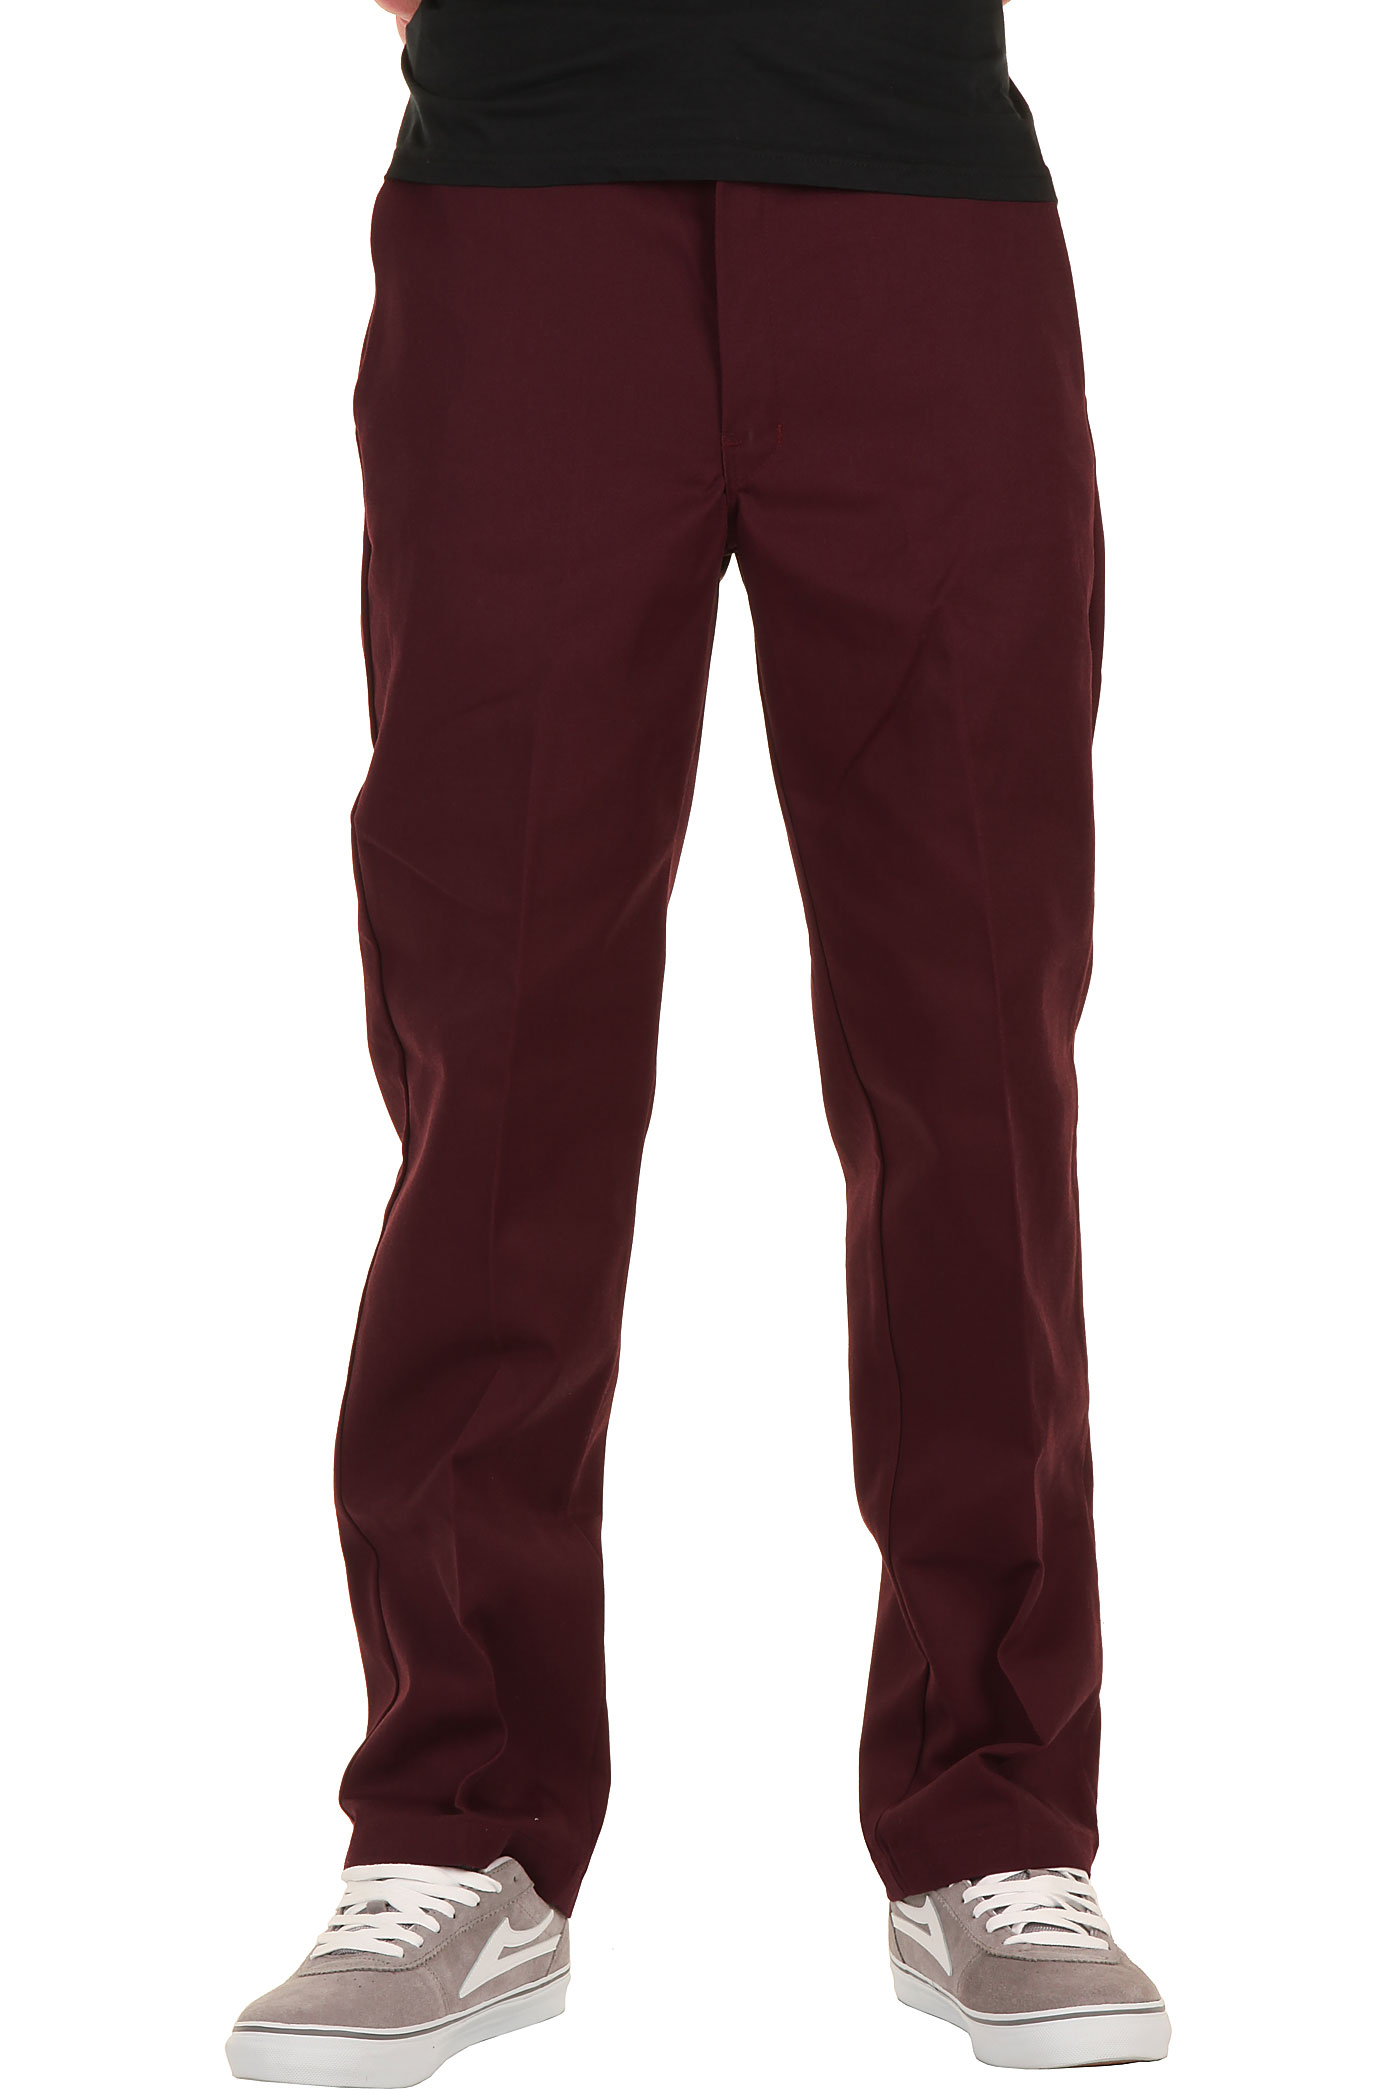 dickies o dog 874 workpant hose maroon kaufen bei. Black Bedroom Furniture Sets. Home Design Ideas